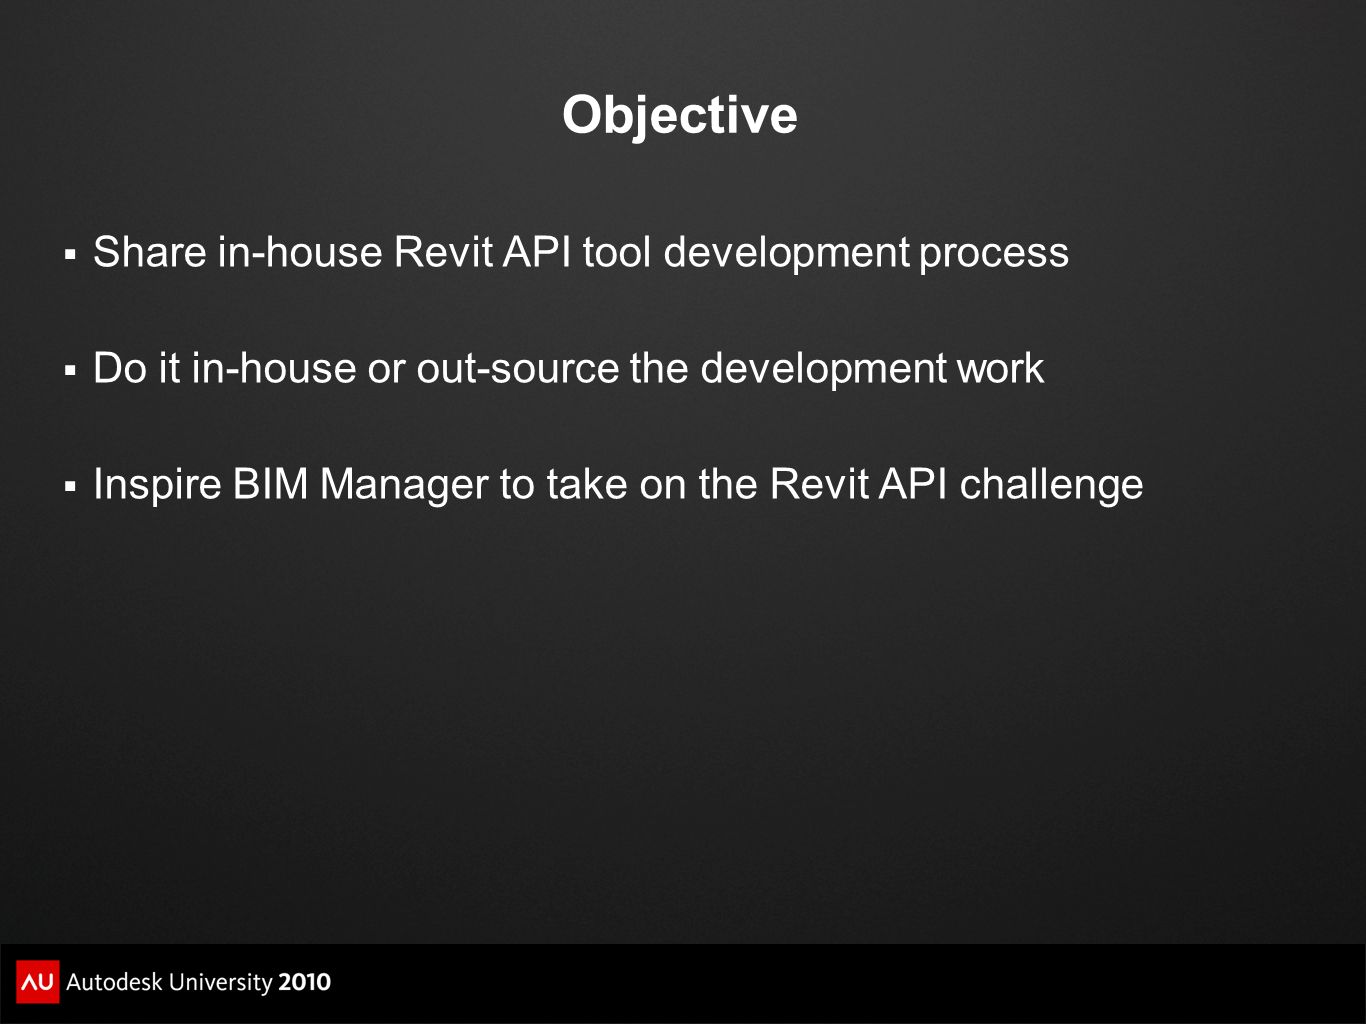 Objective Share in-house Revit API tool development process Do it in-house or out-source the development work Inspire BIM Manager to take on the Revit